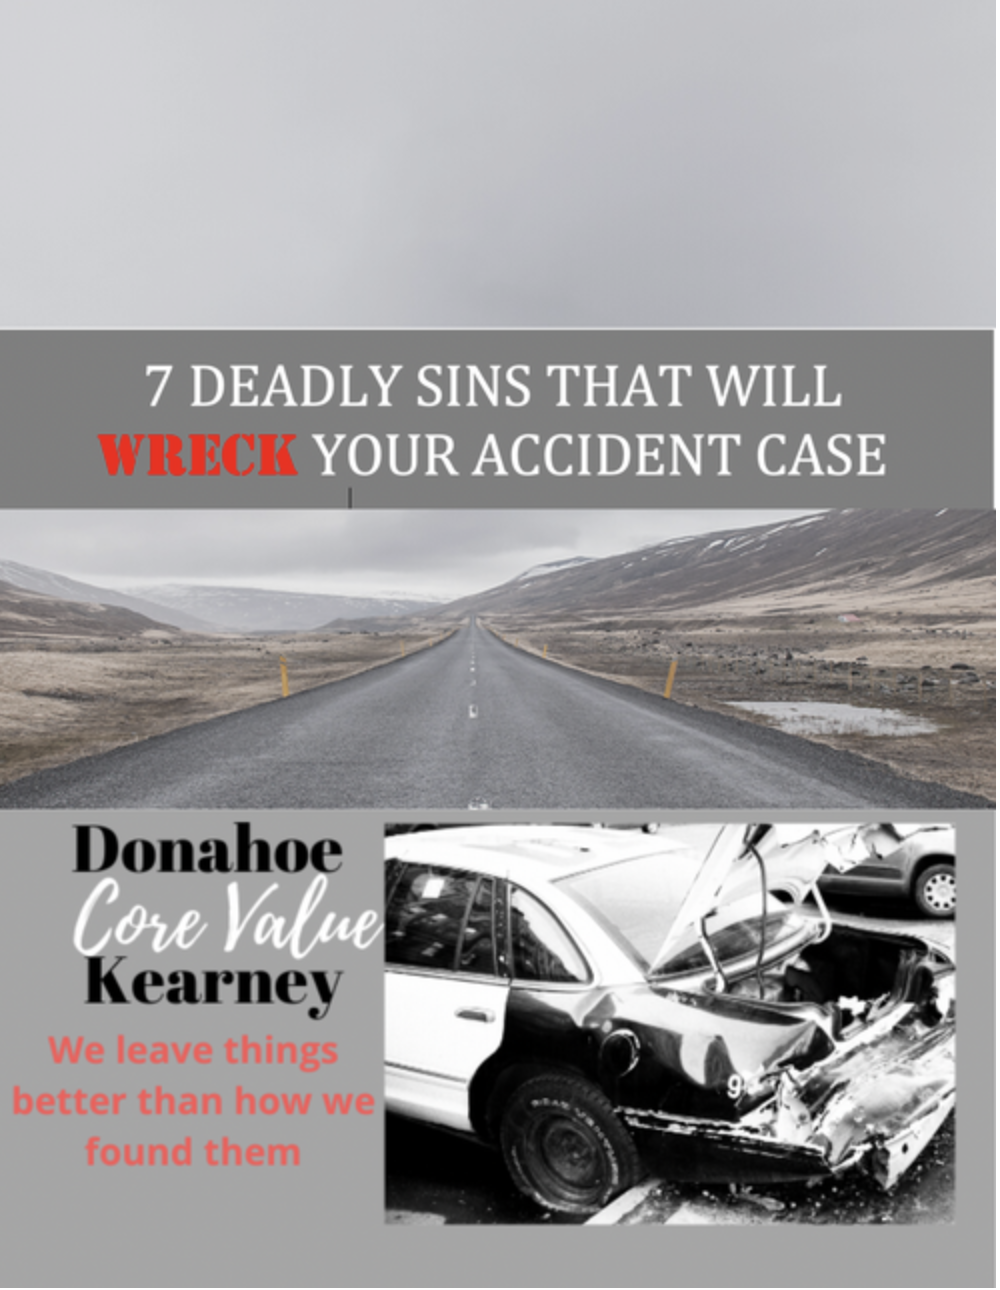 7 Deadly Sins That Will Wreck Your Accident Case